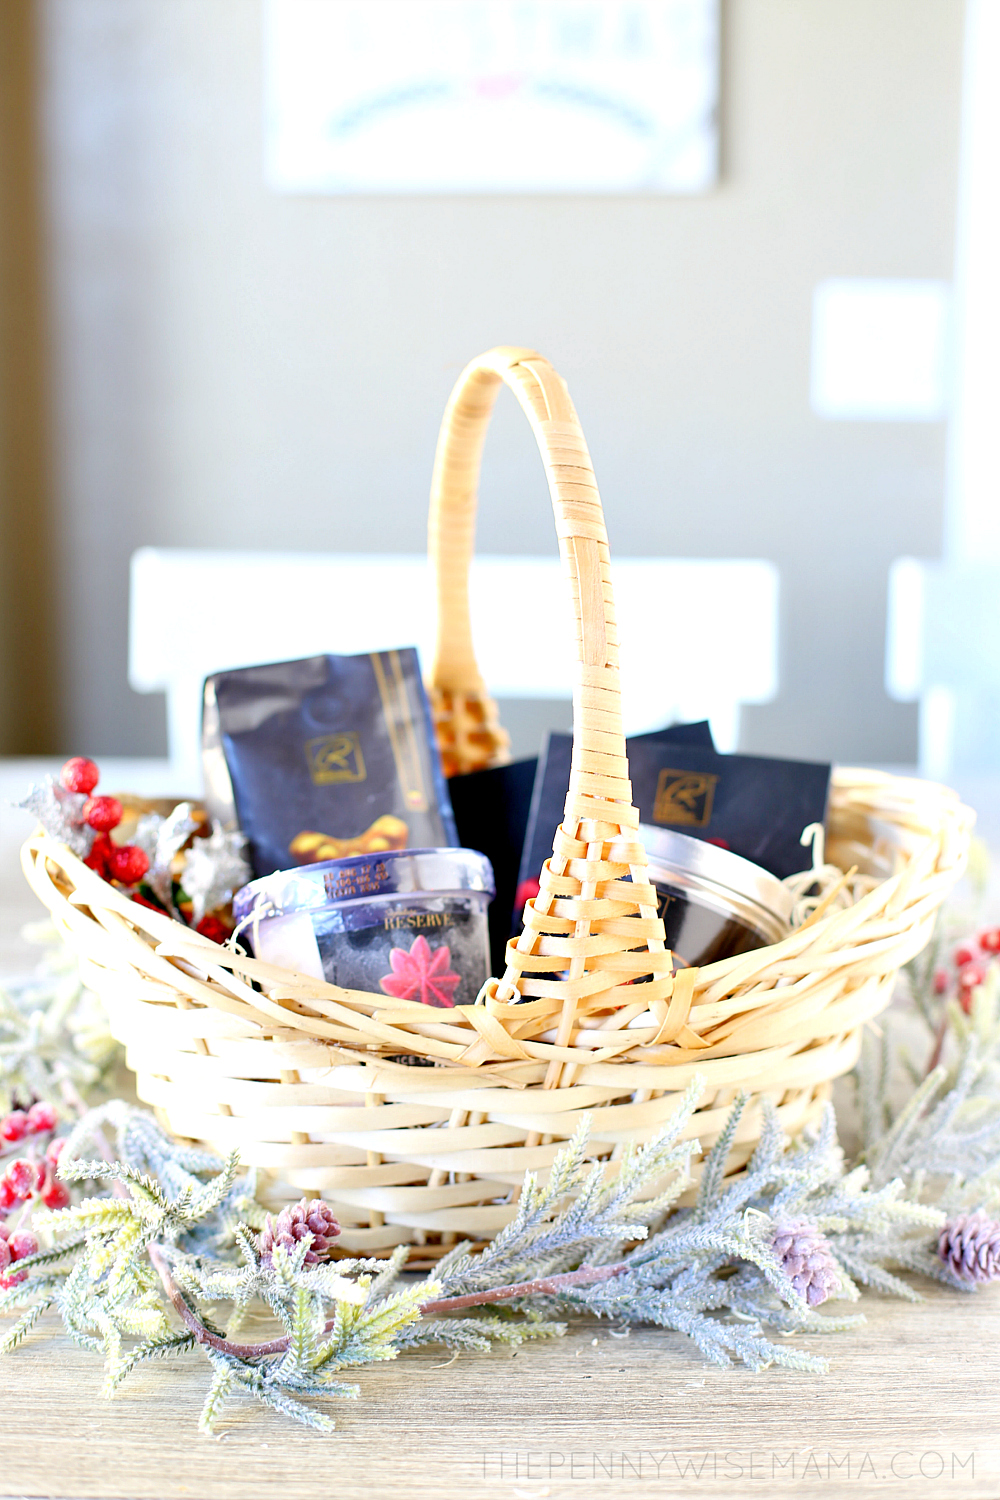 Holiday Gift Idea - DIY Dessert Gift Basket